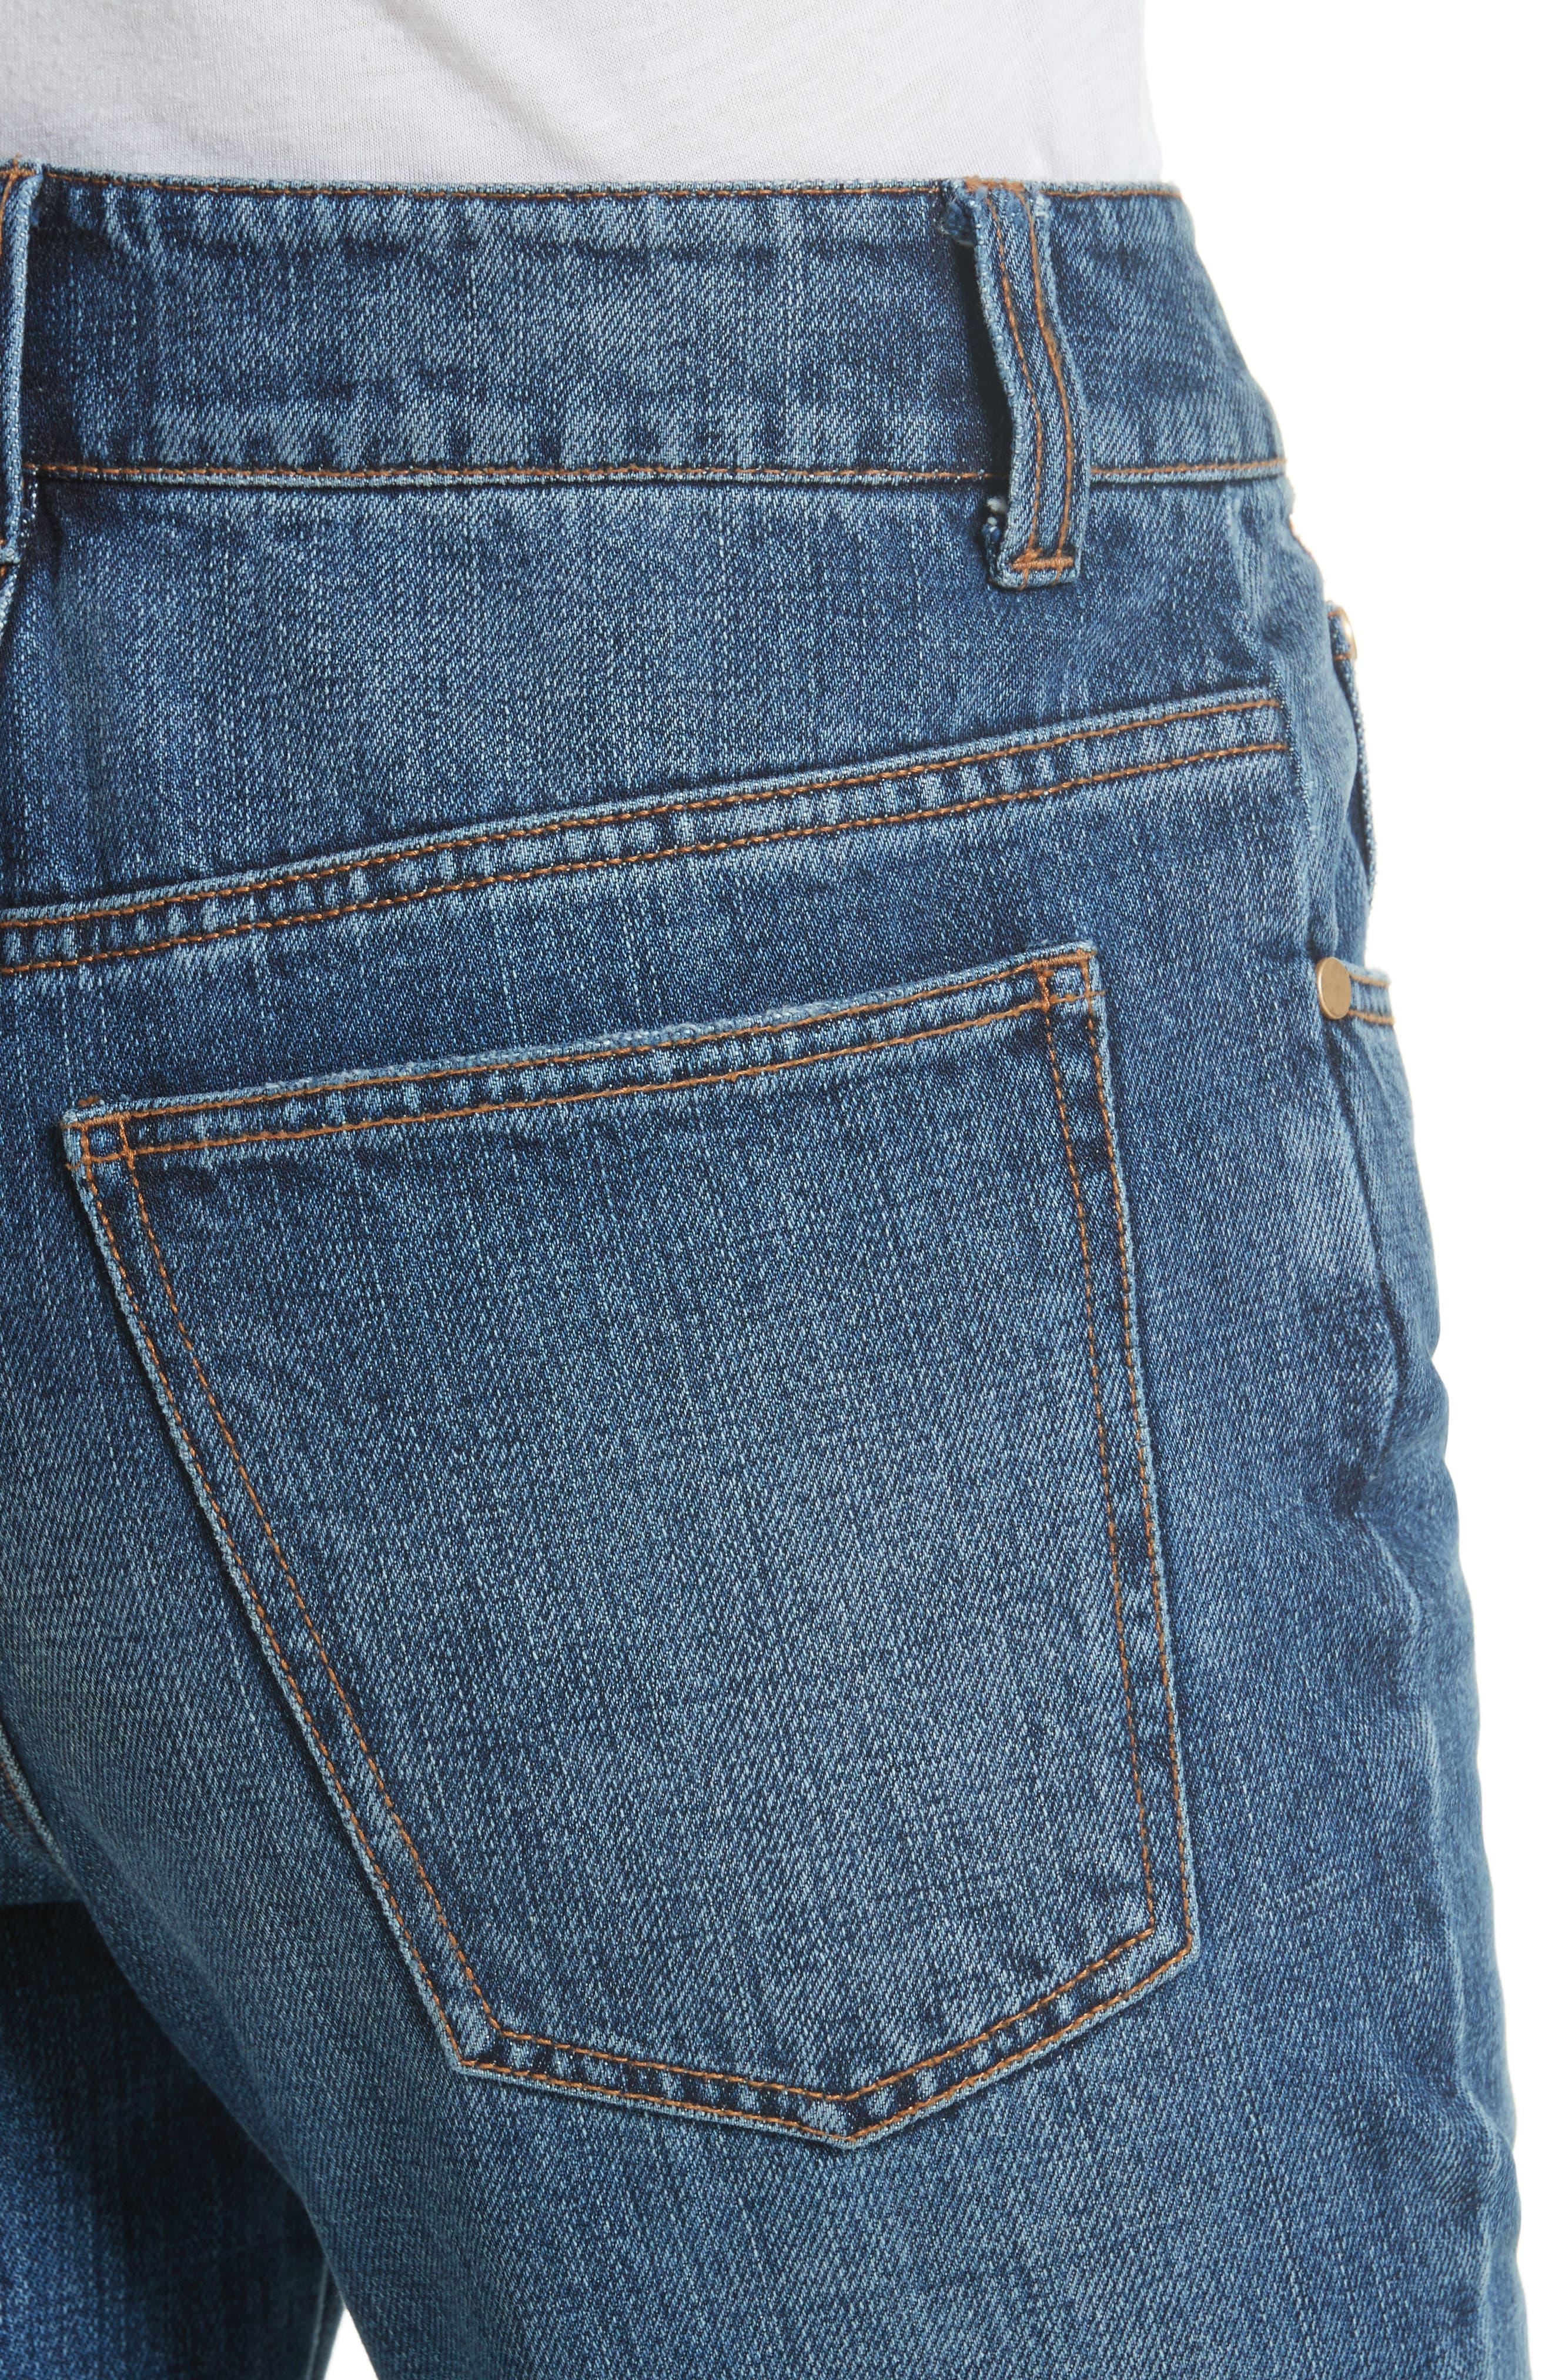 Ankle Flare High Waist Jeans,                             Alternate thumbnail 4, color,                             401